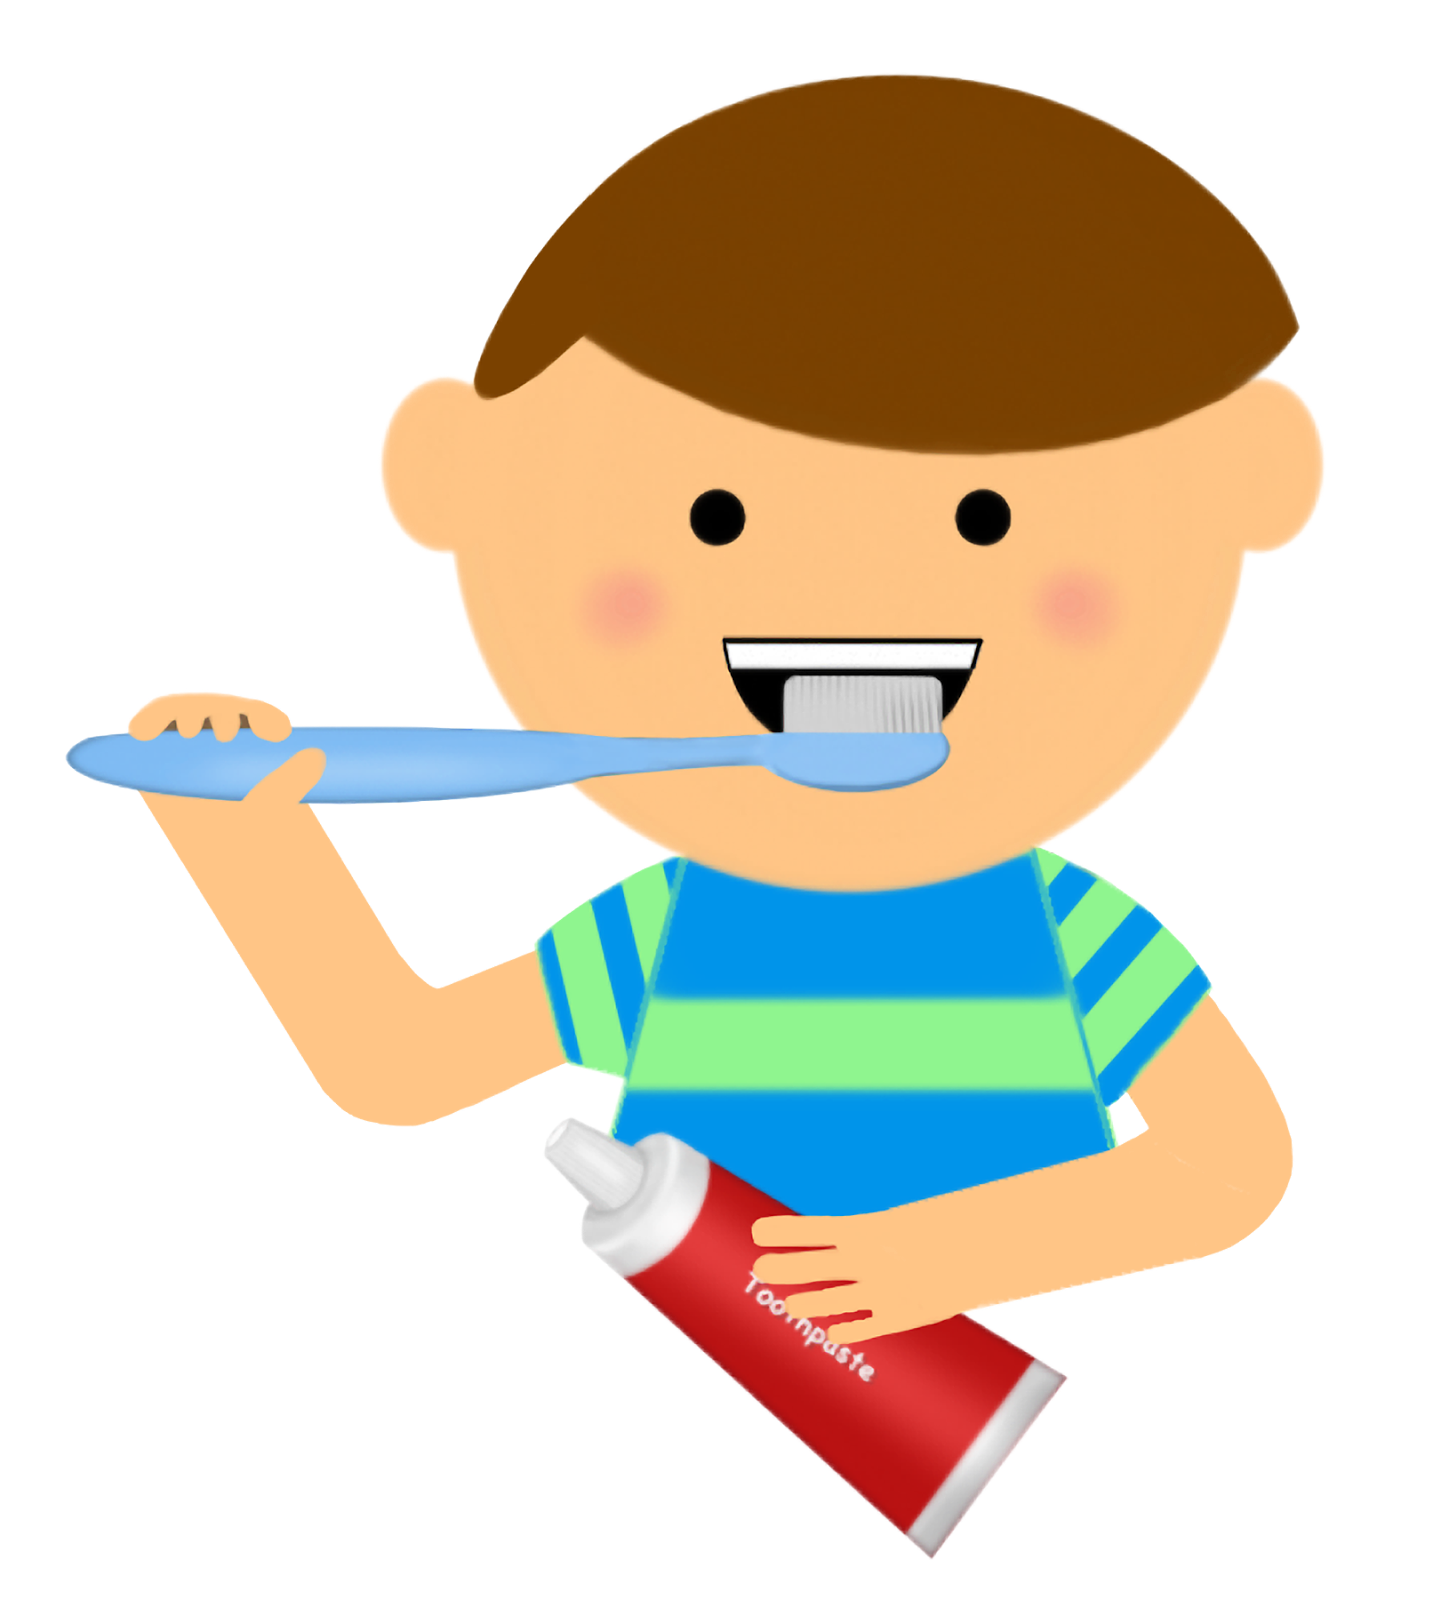 Dental clipart dental material. Brushing teeth pictures cliparts